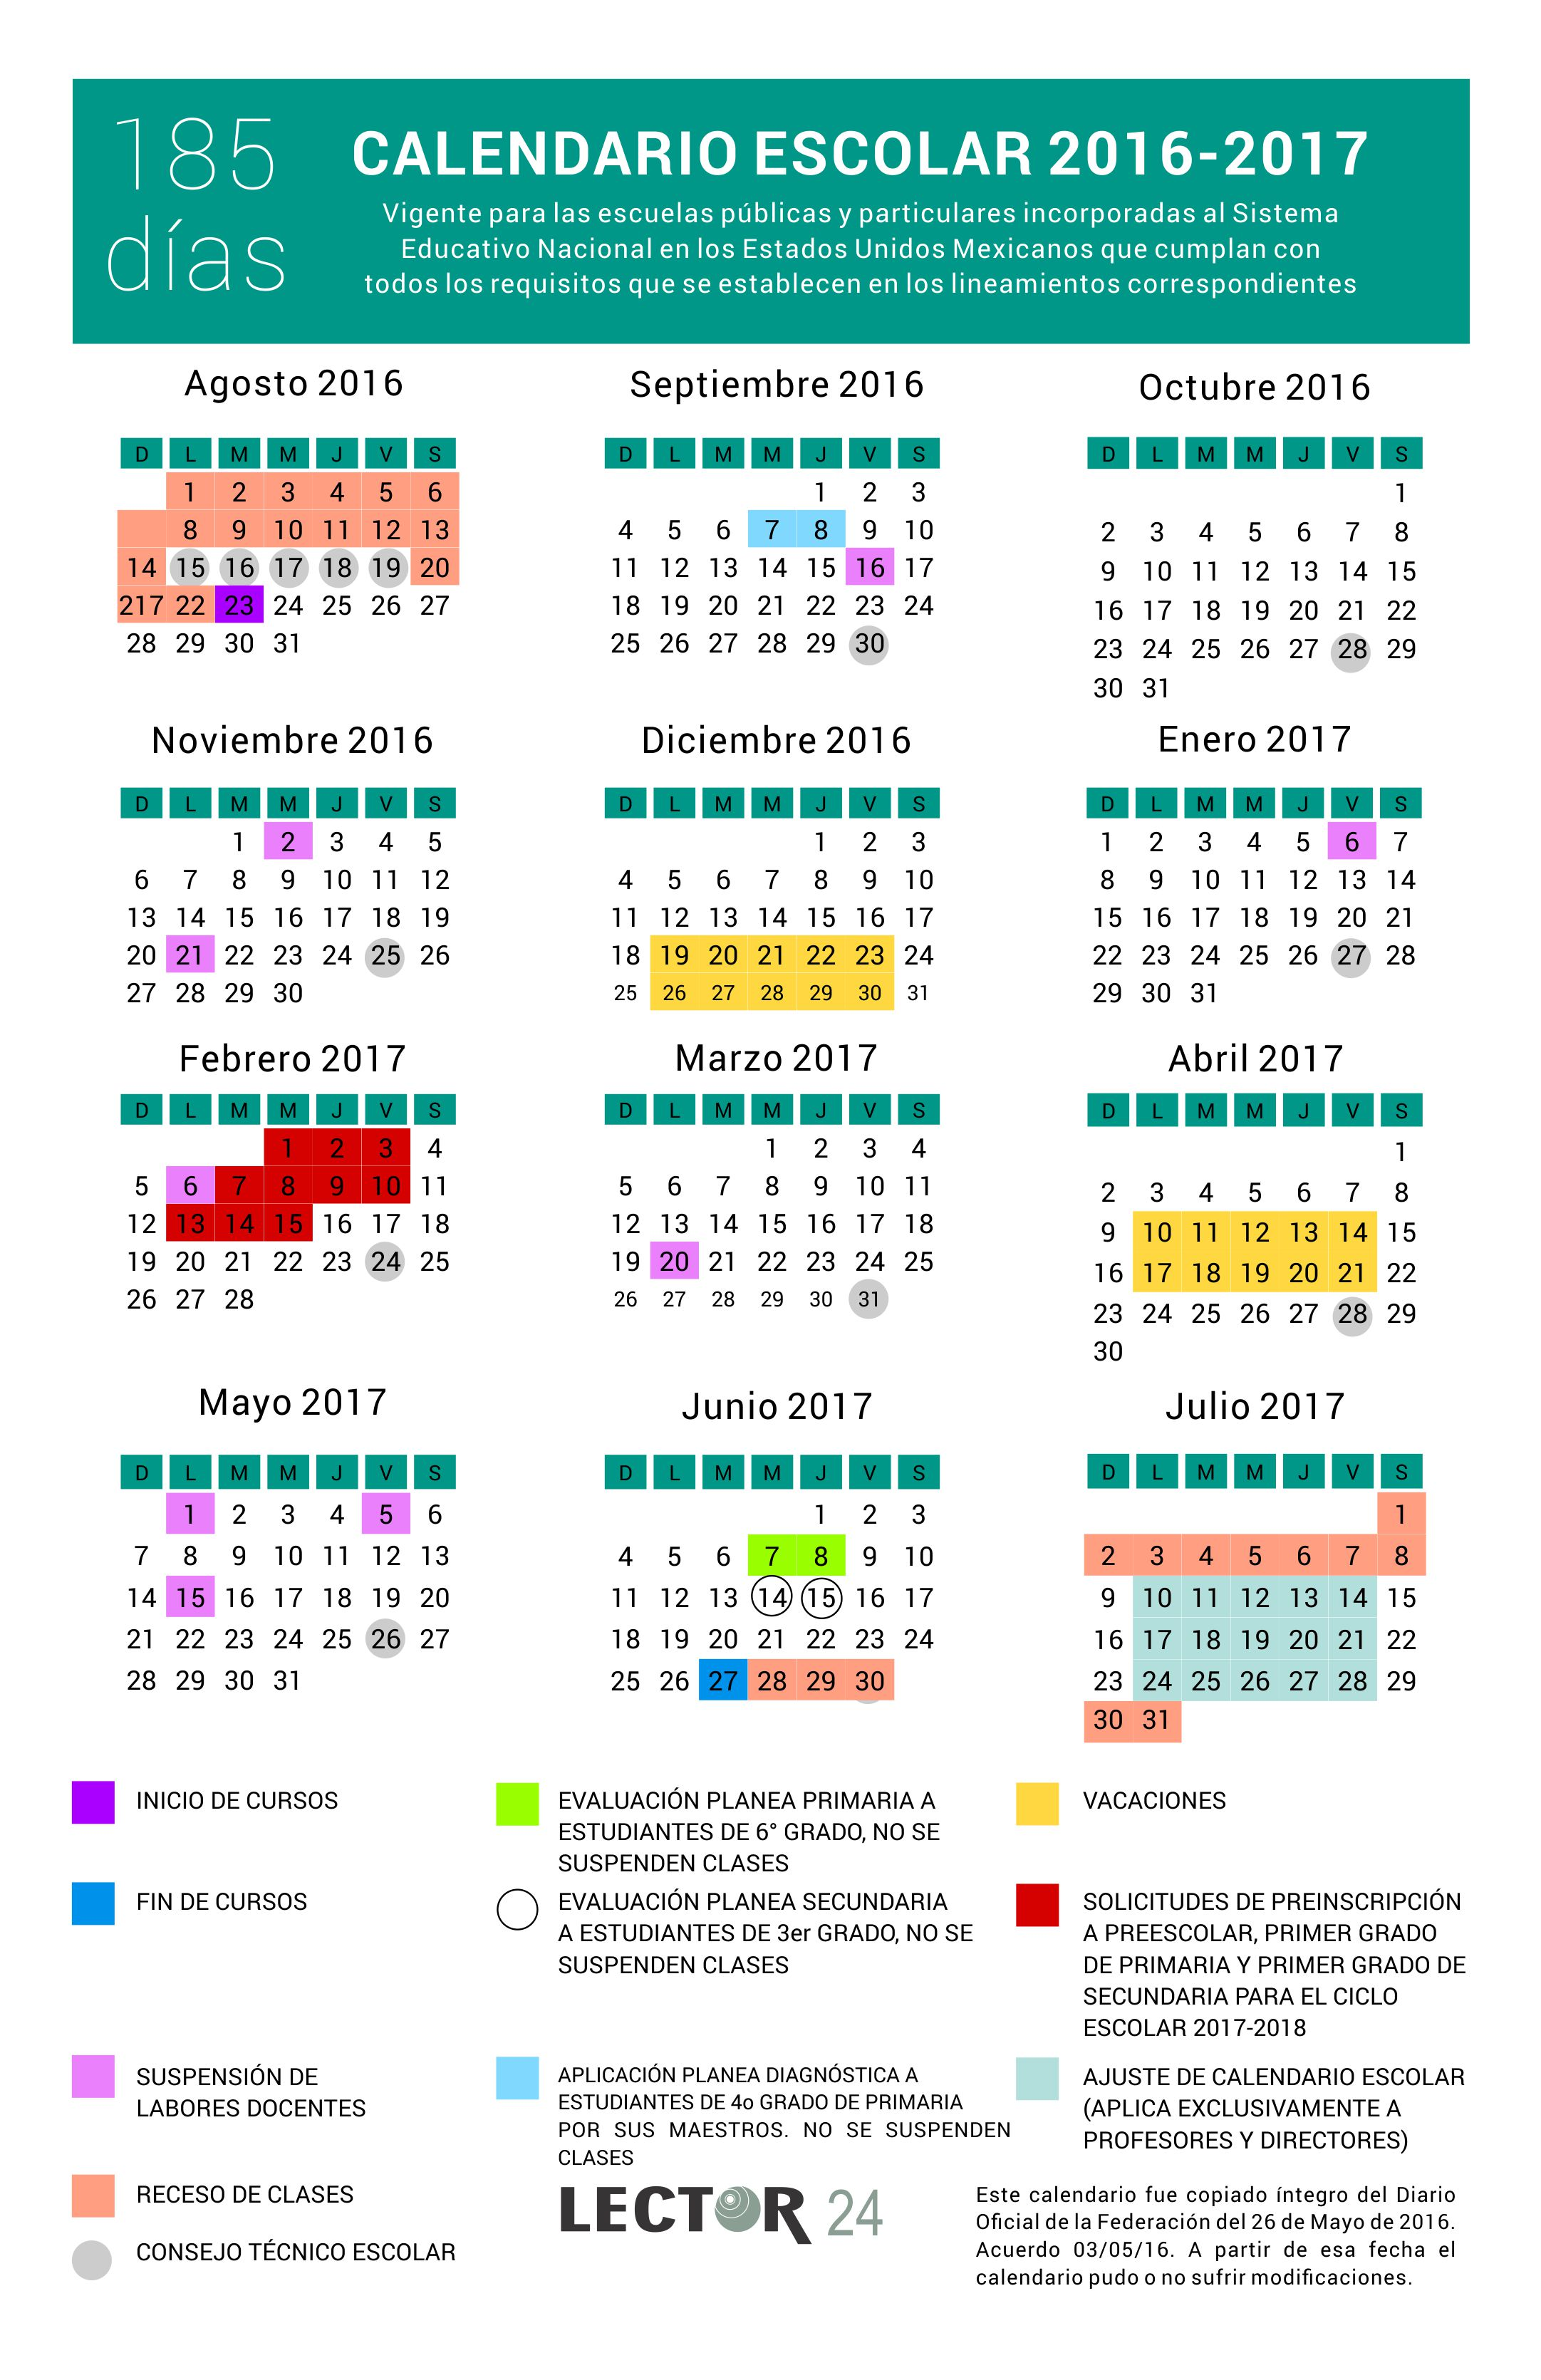 2016 05 26 Calendario escolar 2016-2017 SEP 185 días